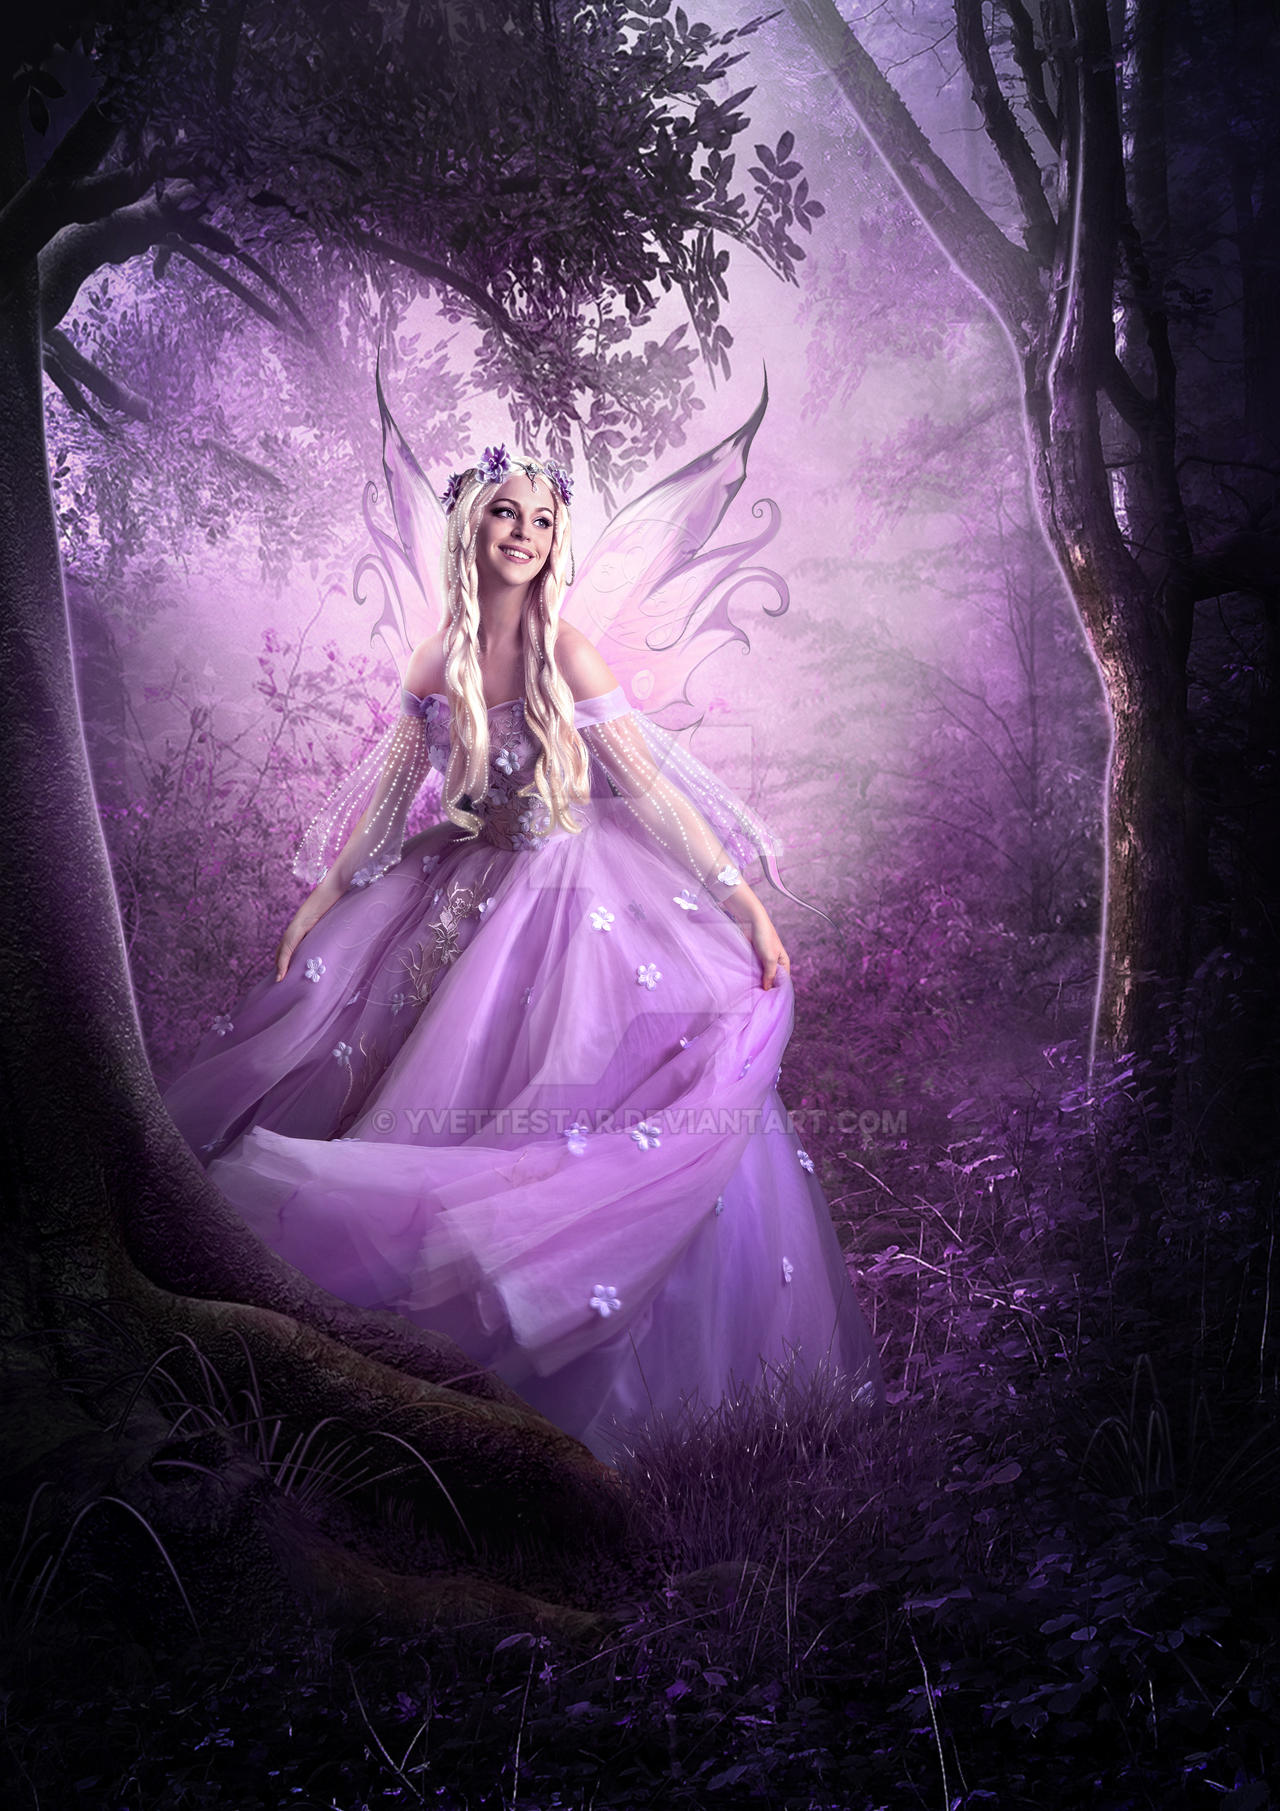 Pink Fairy In Forest by Yvette